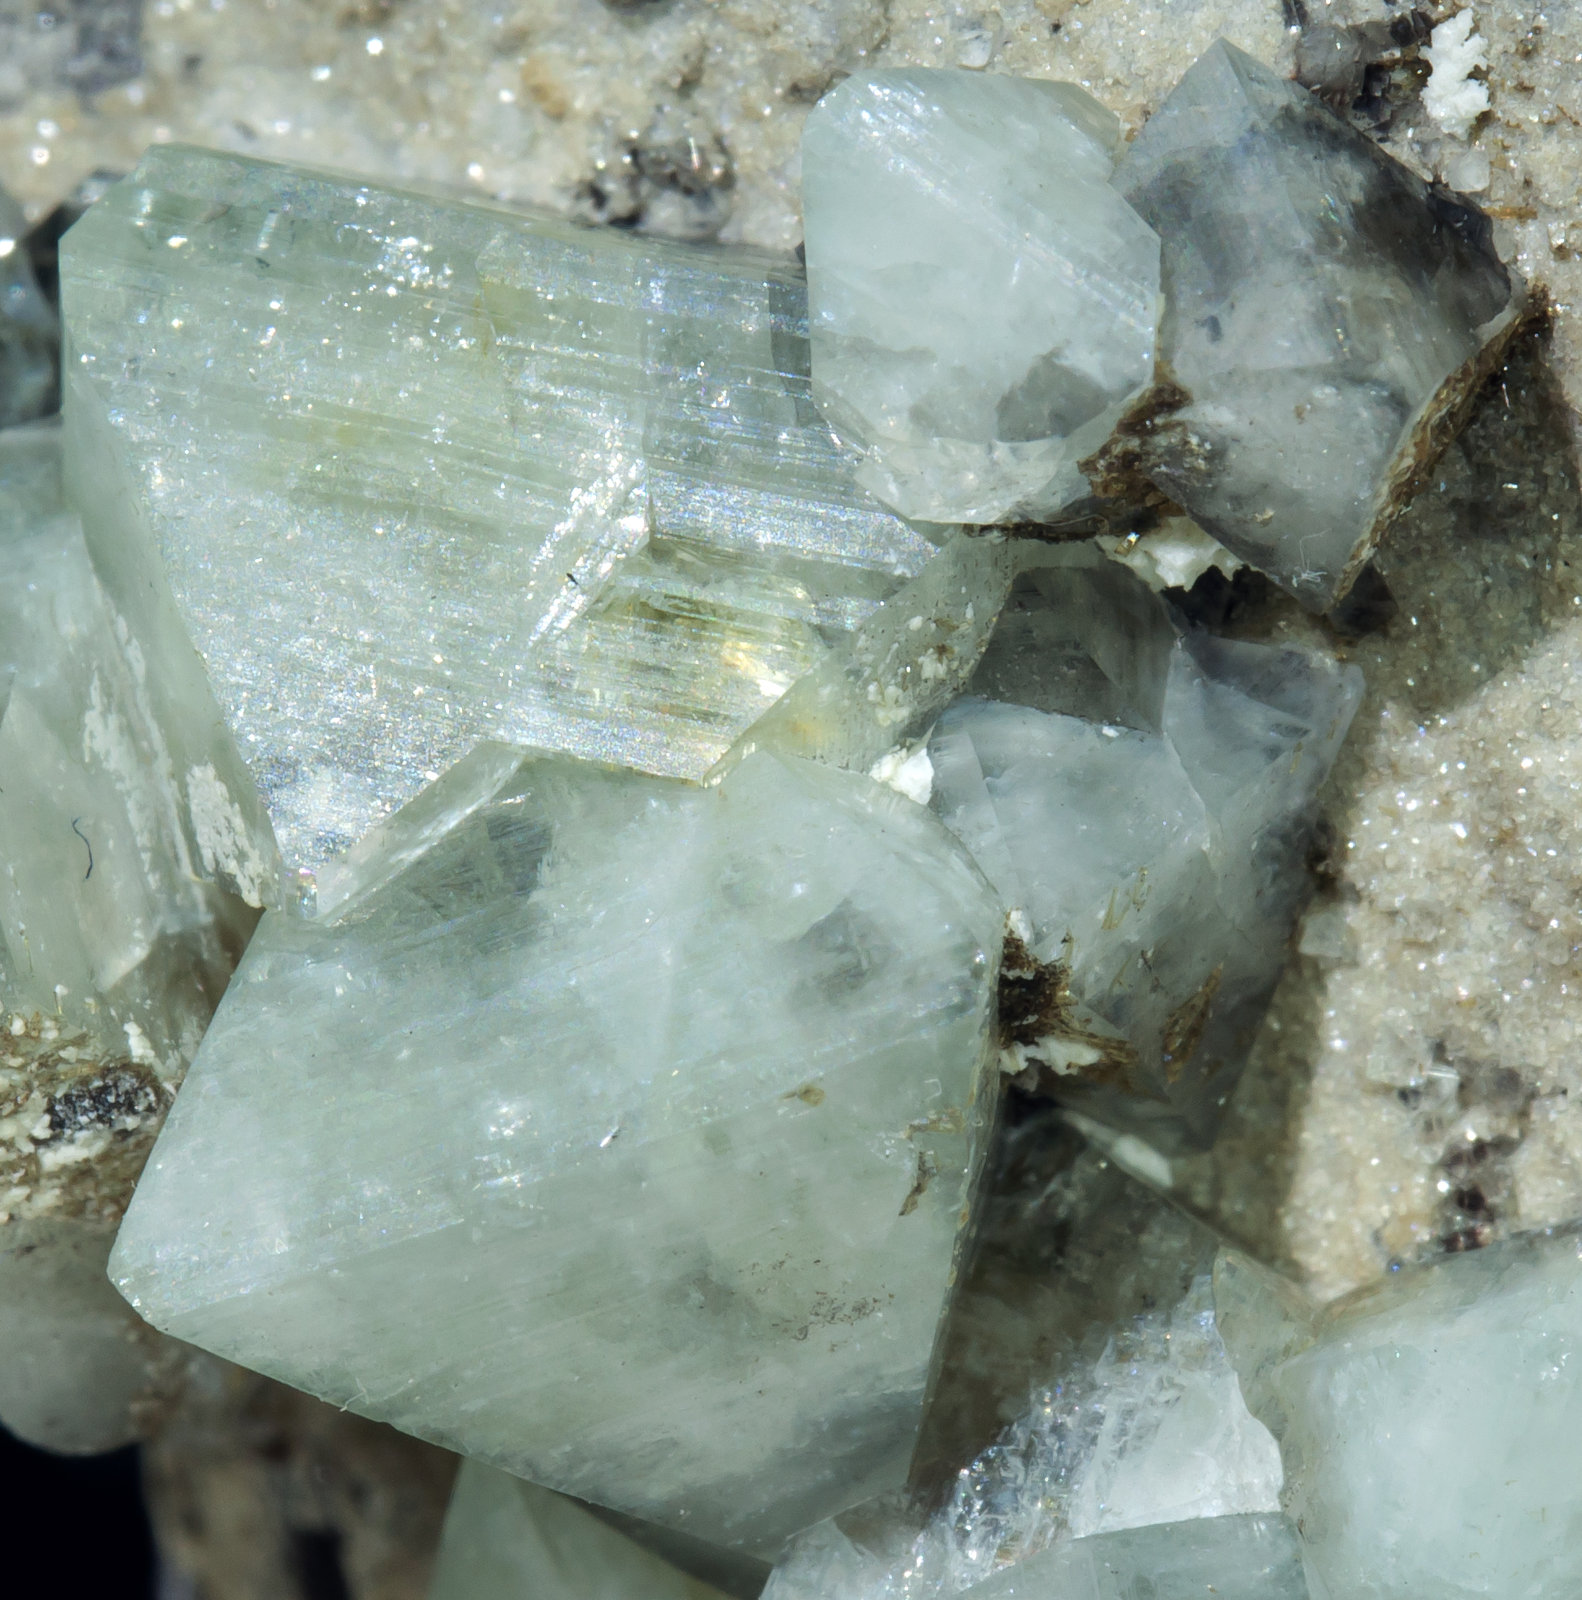 specimens/s_imagesAB1/Wardite-MF86AB1d.jpg